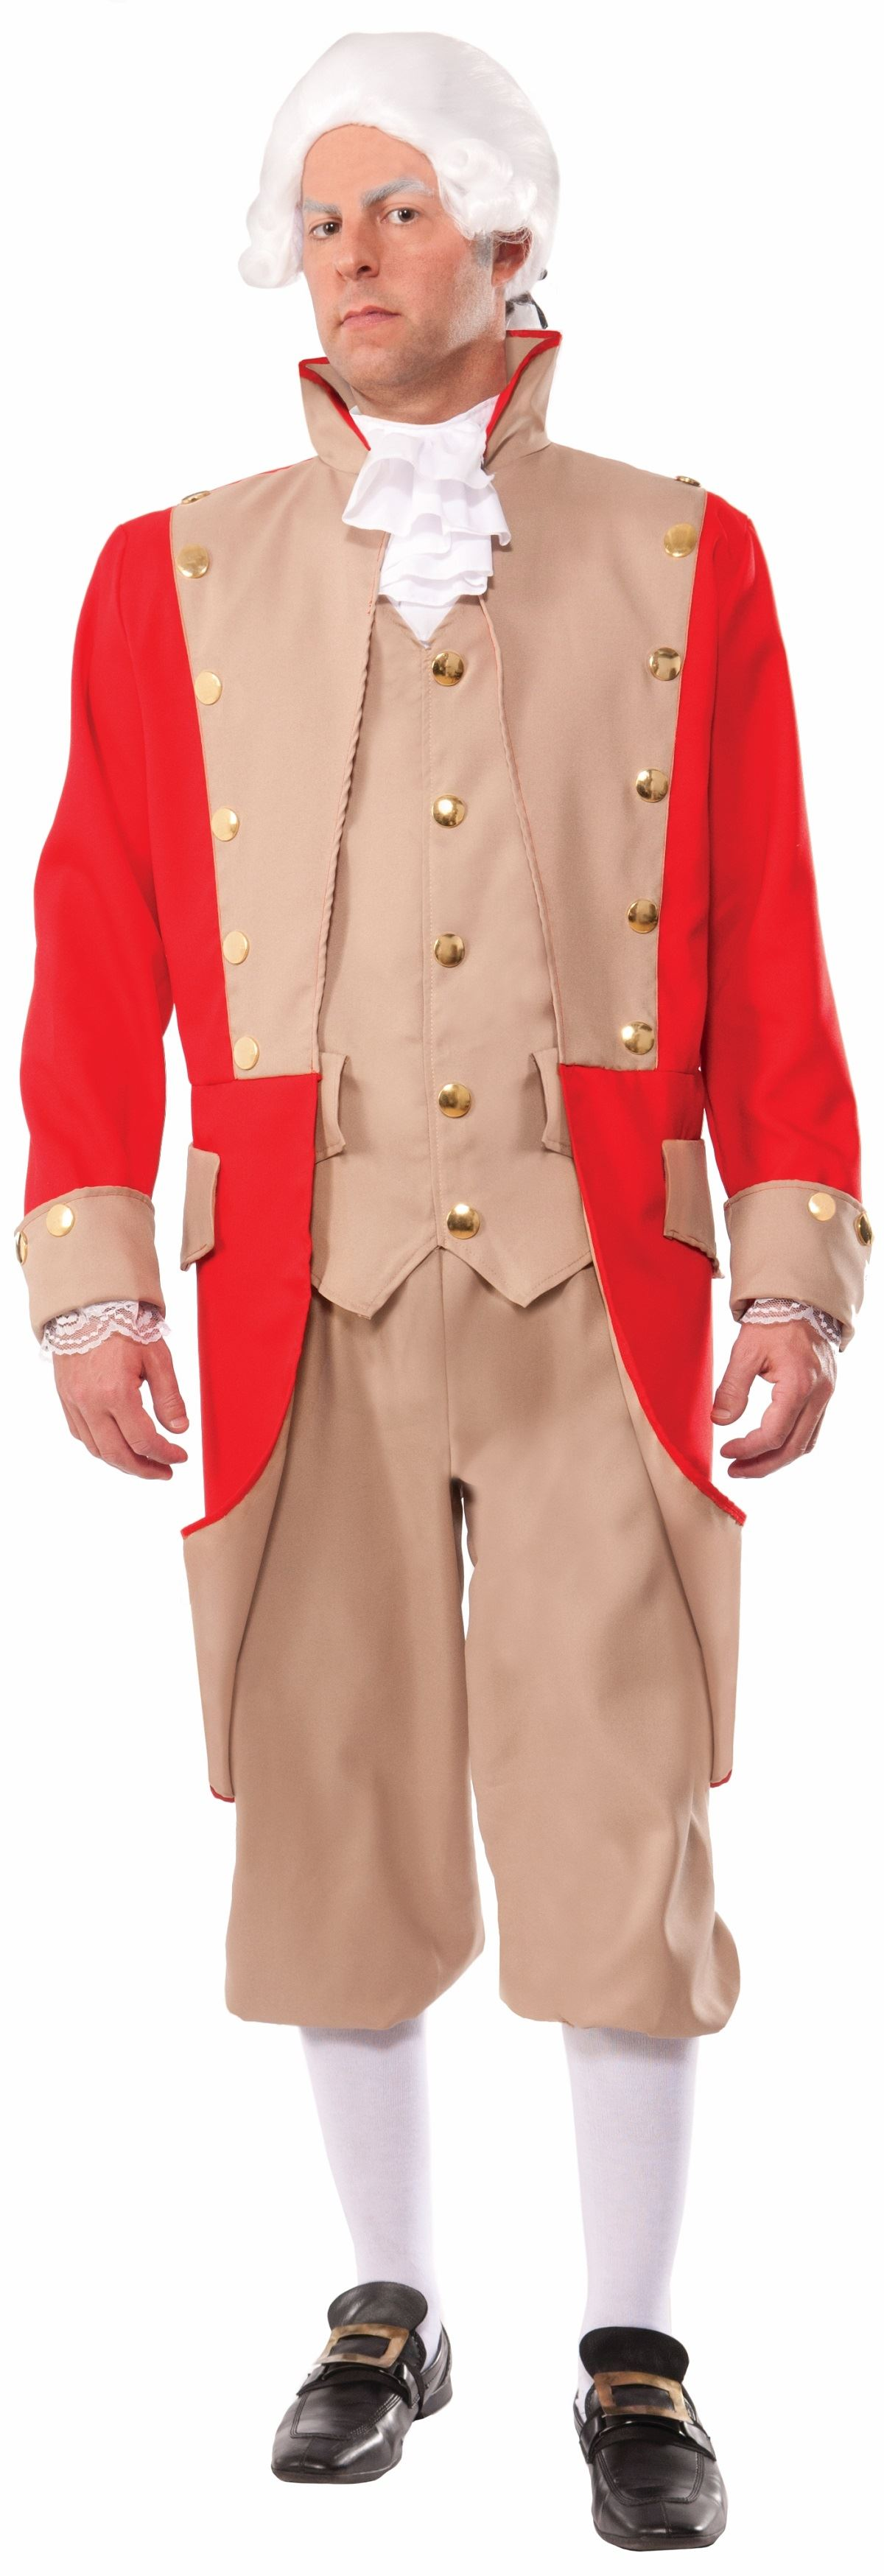 Adult British Red Coat Men General Costume | $64.99 | The Costume Land